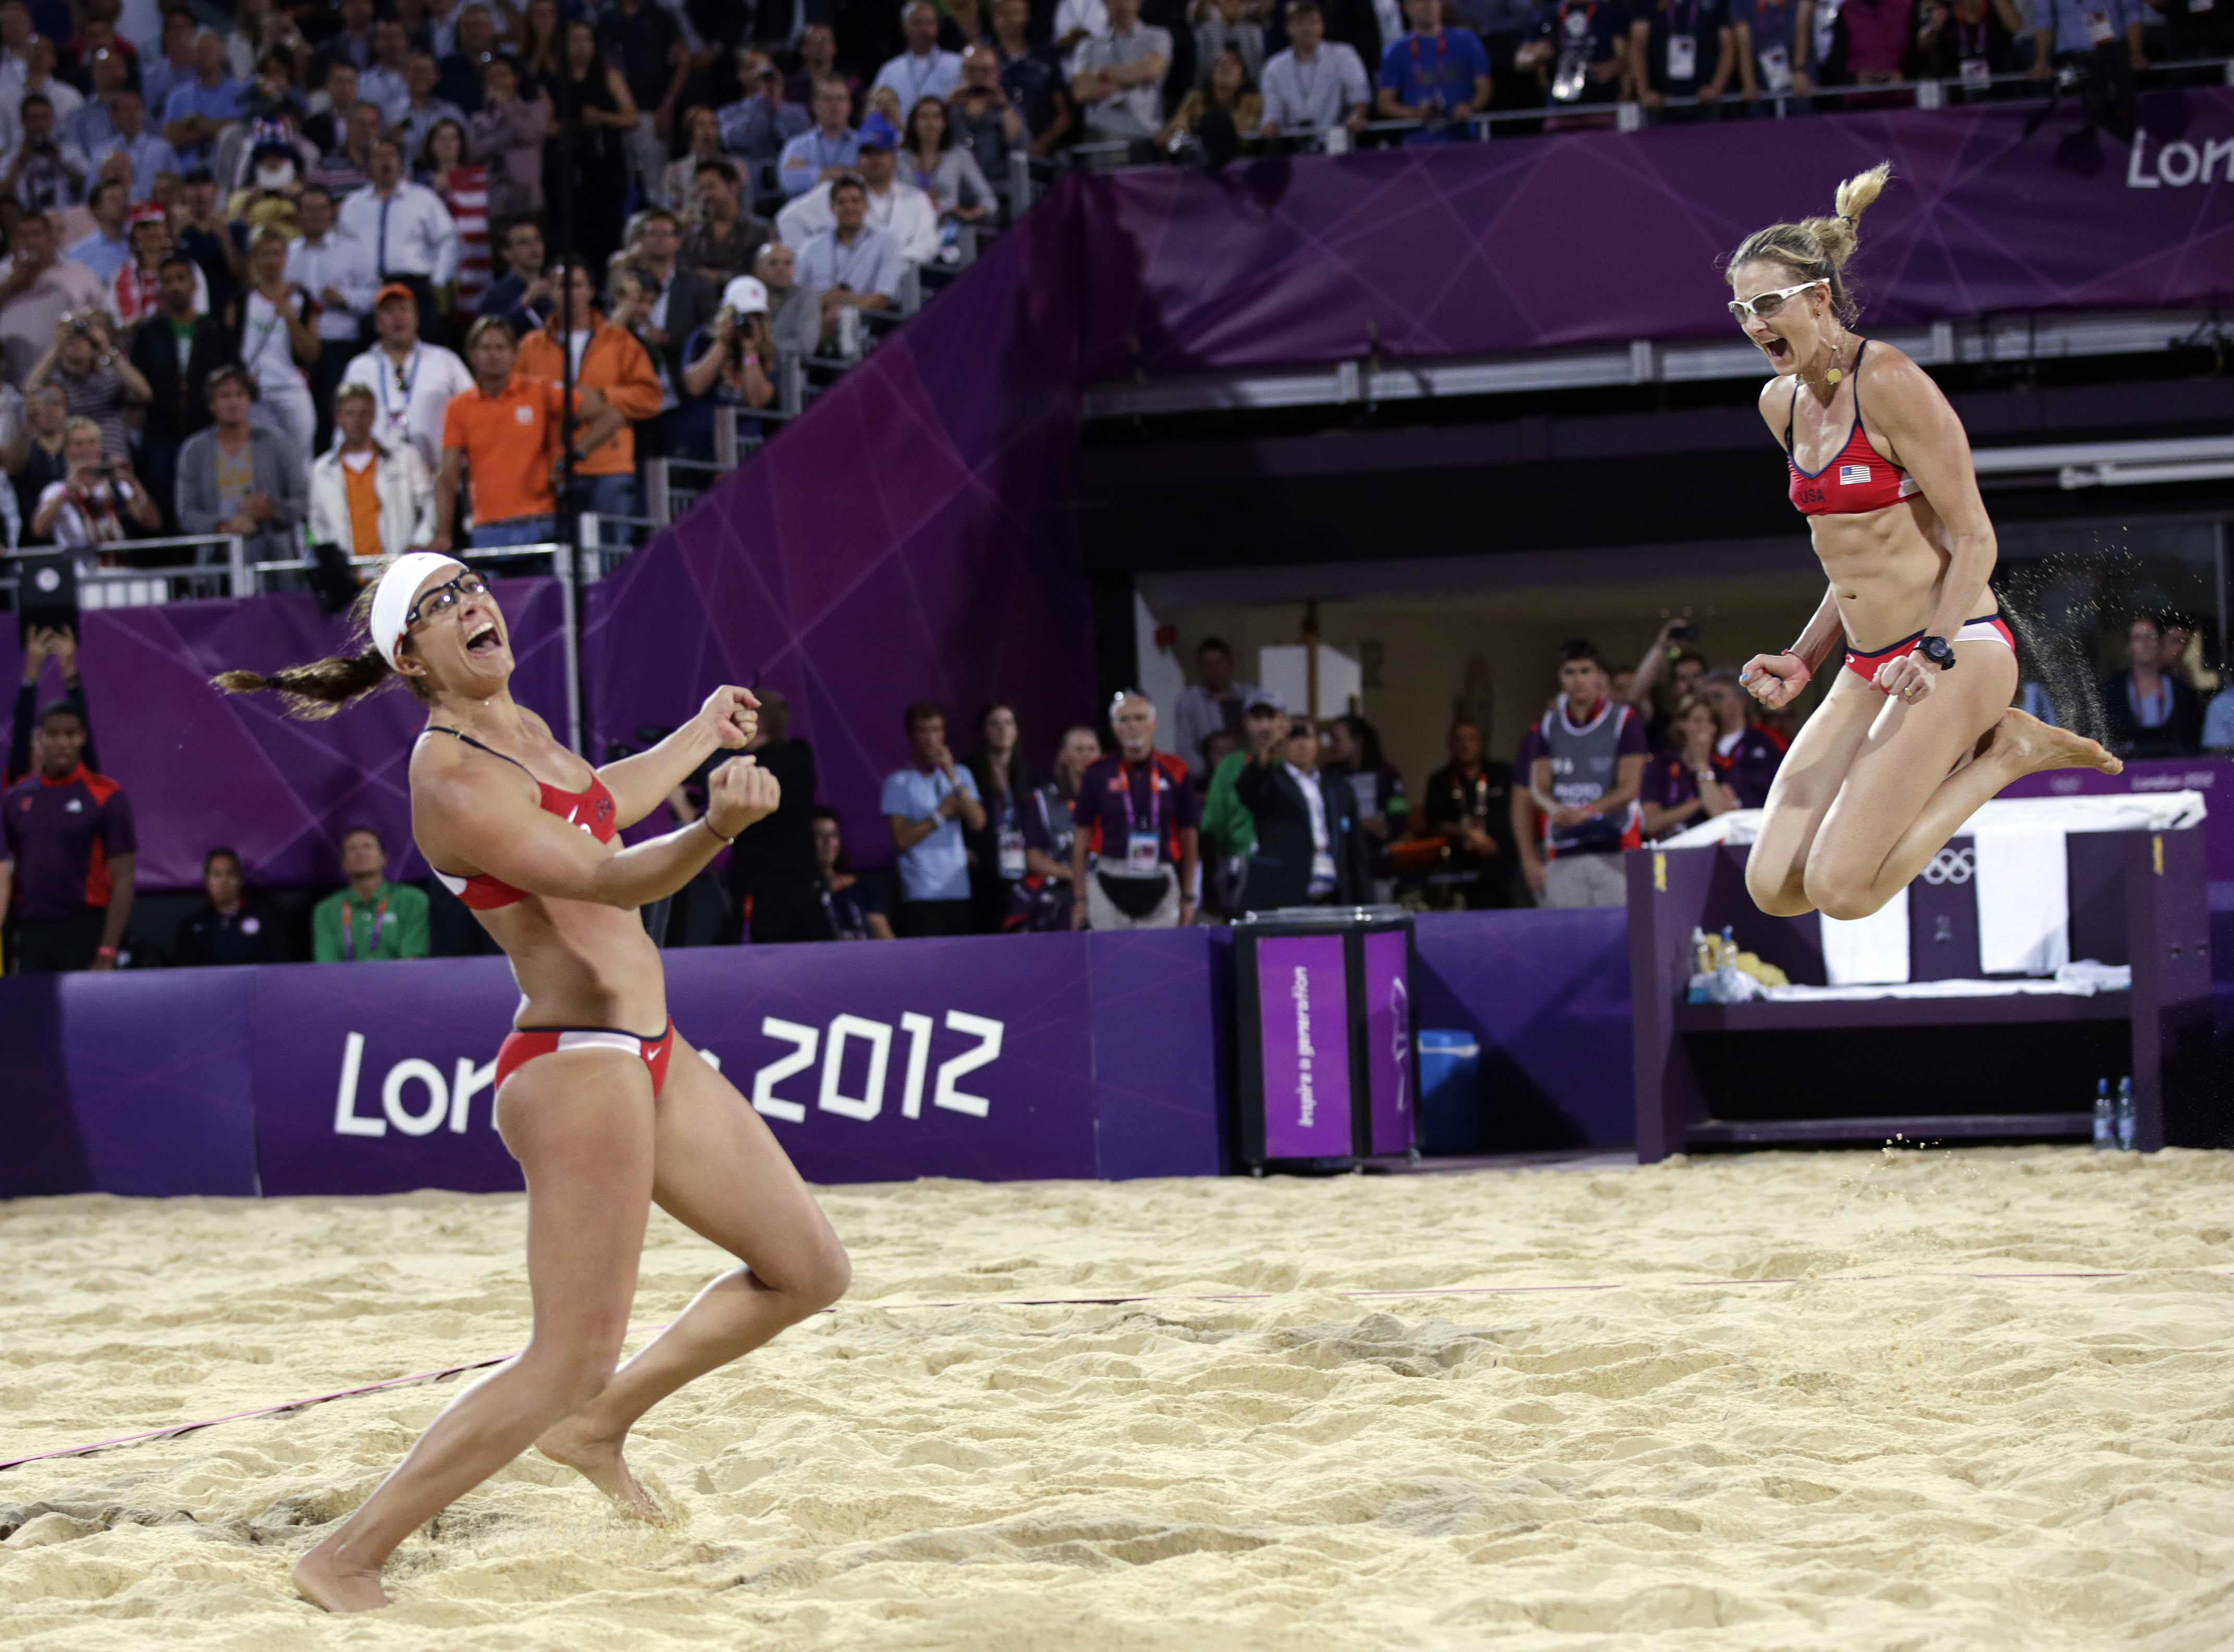 FILE - In this Aug. 8, 2012, file photo, Miss May Treanor, left, and Kerri Walsh Jennings celebrate a win over April Ross and Jennifer Kessy during the women's Gold Medal beach volleyball match at the 2012 Summer Olympics in London.  When longtime partner